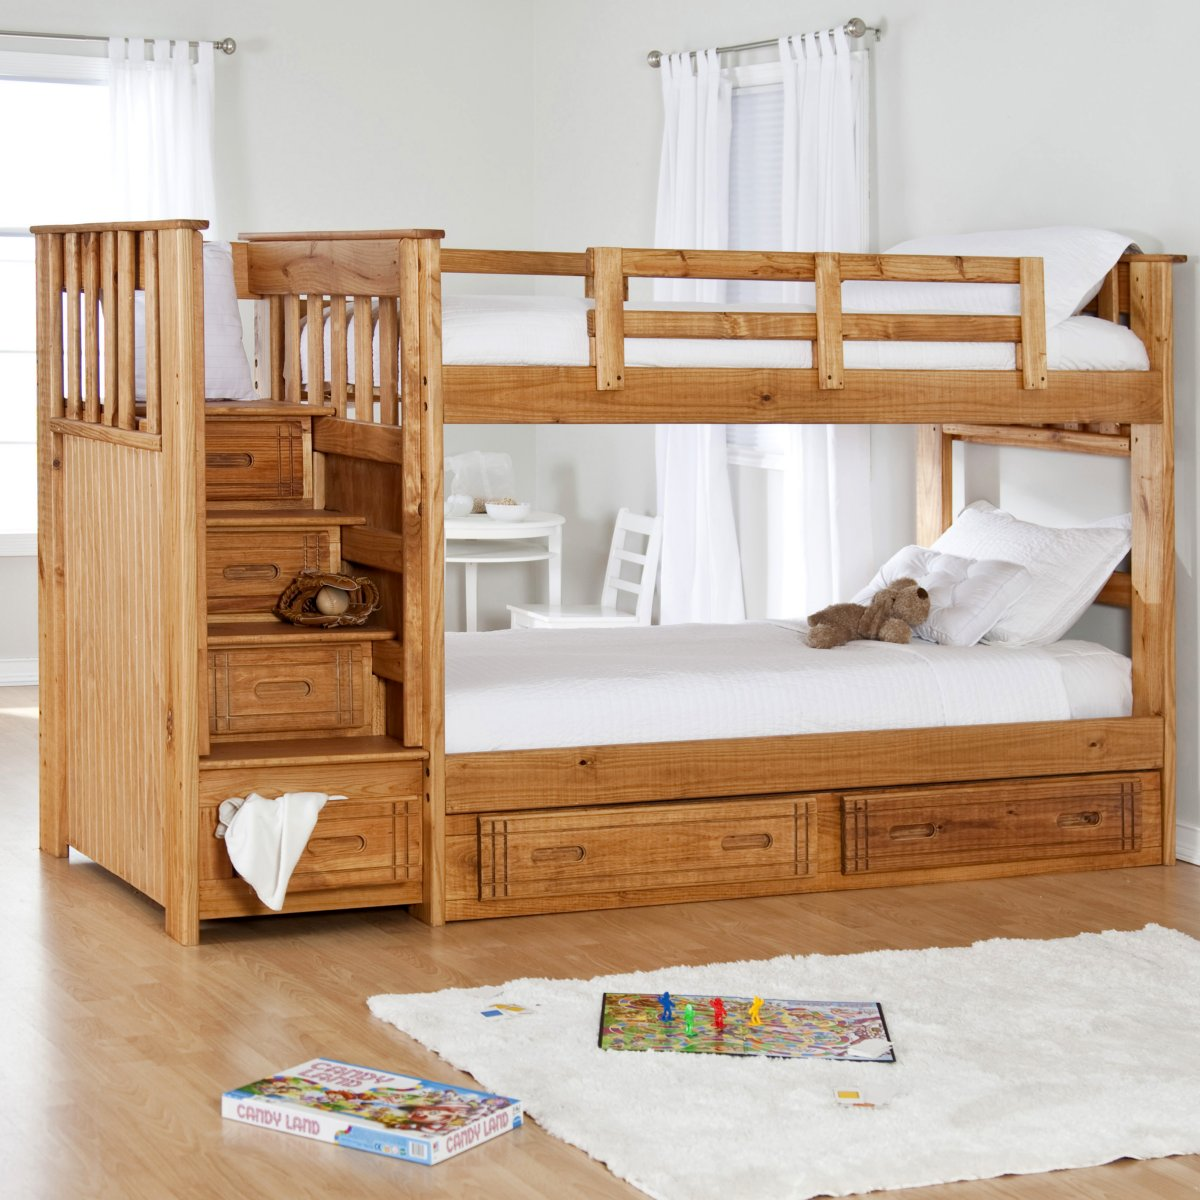 Wondrous Bedroom Using Brown Wooden Bunk Bed also Smooth Carpet